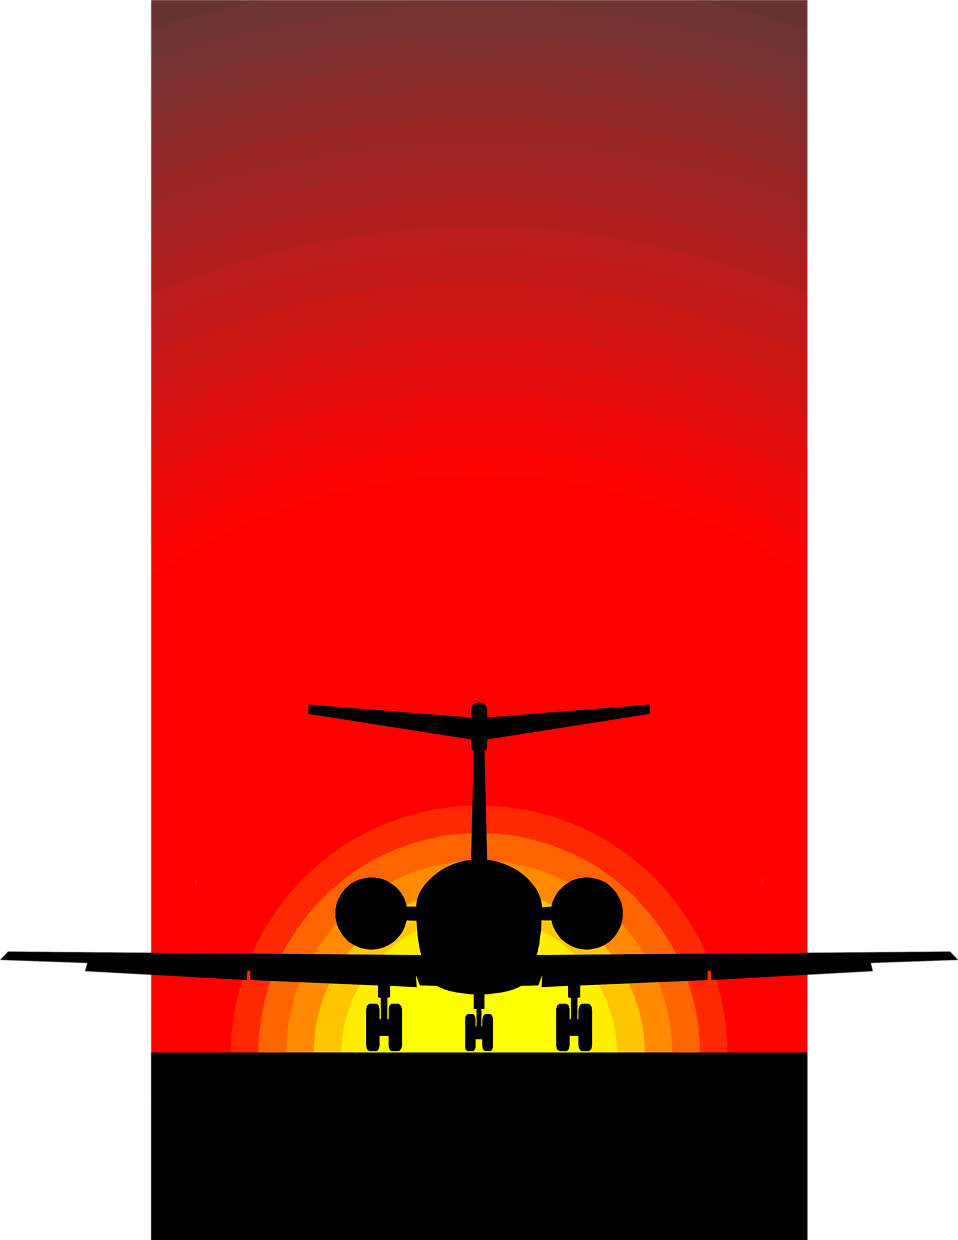 Sun with plane clipart clip freeuse stock Sunset Silhouette Art at GetDrawings.com | Free for personal use ... clip freeuse stock